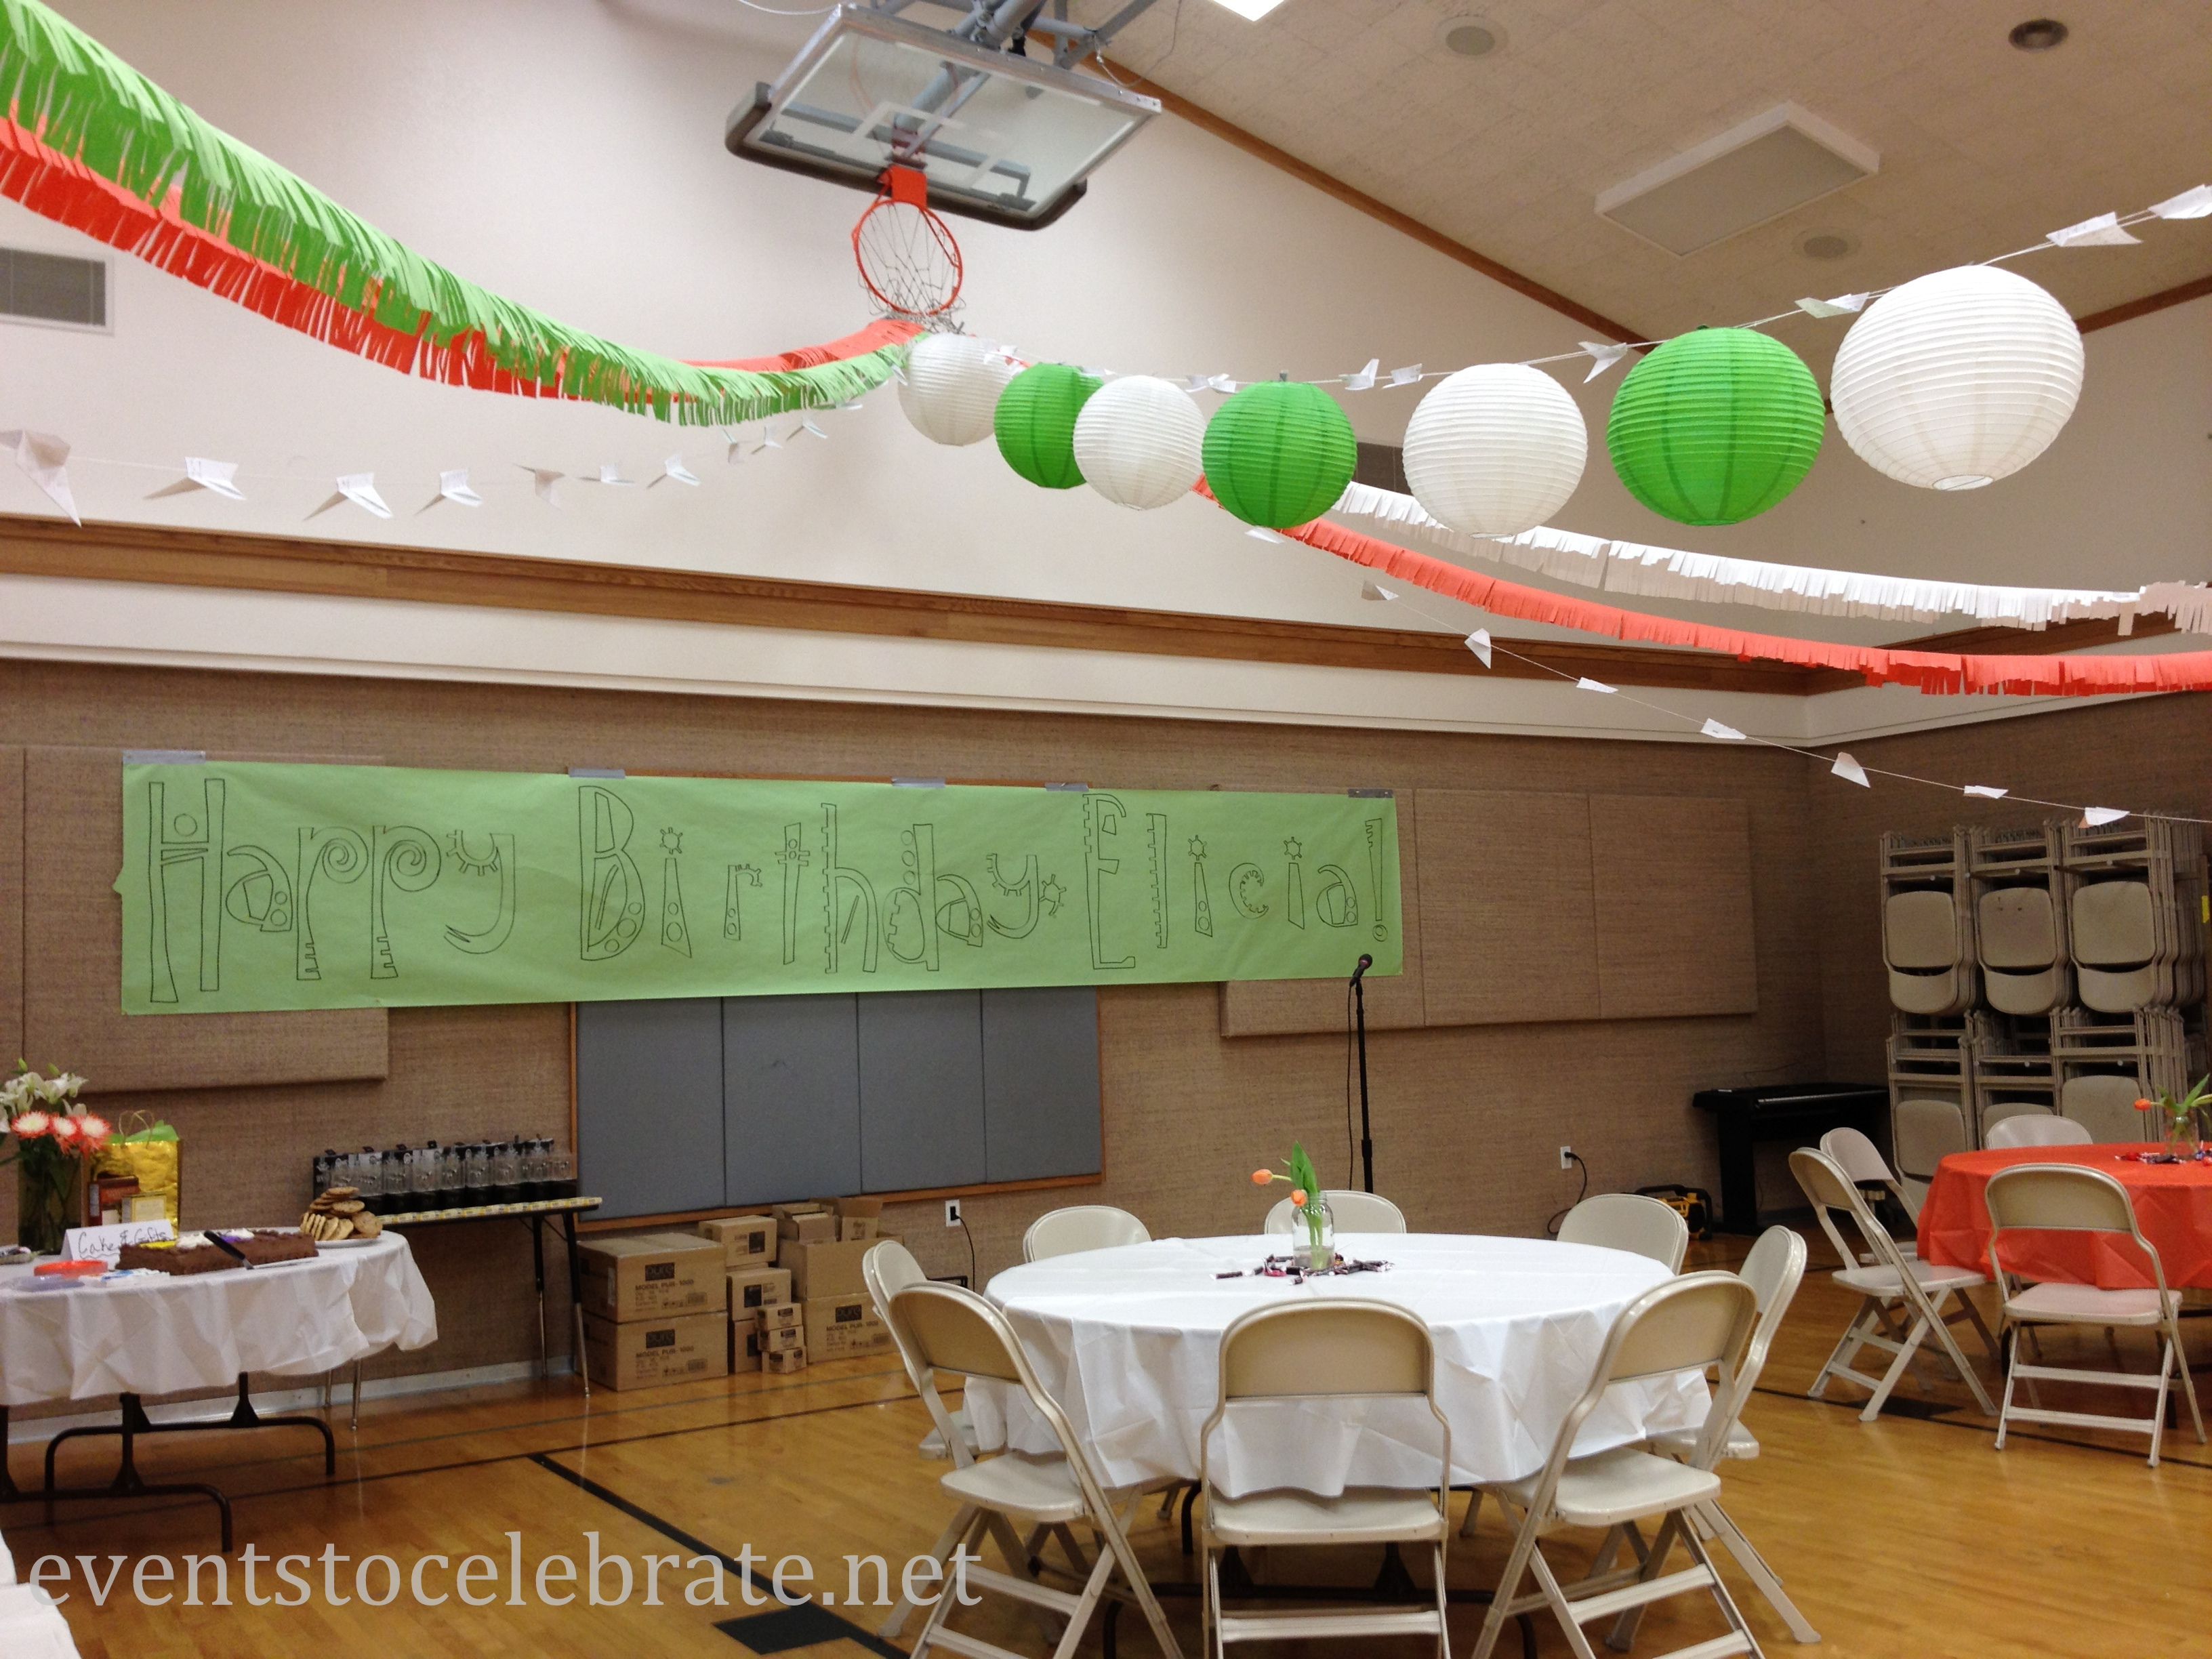 Wall Decor Ideas For Large Spaces : Ideas for decorating large spaces events to celebrate